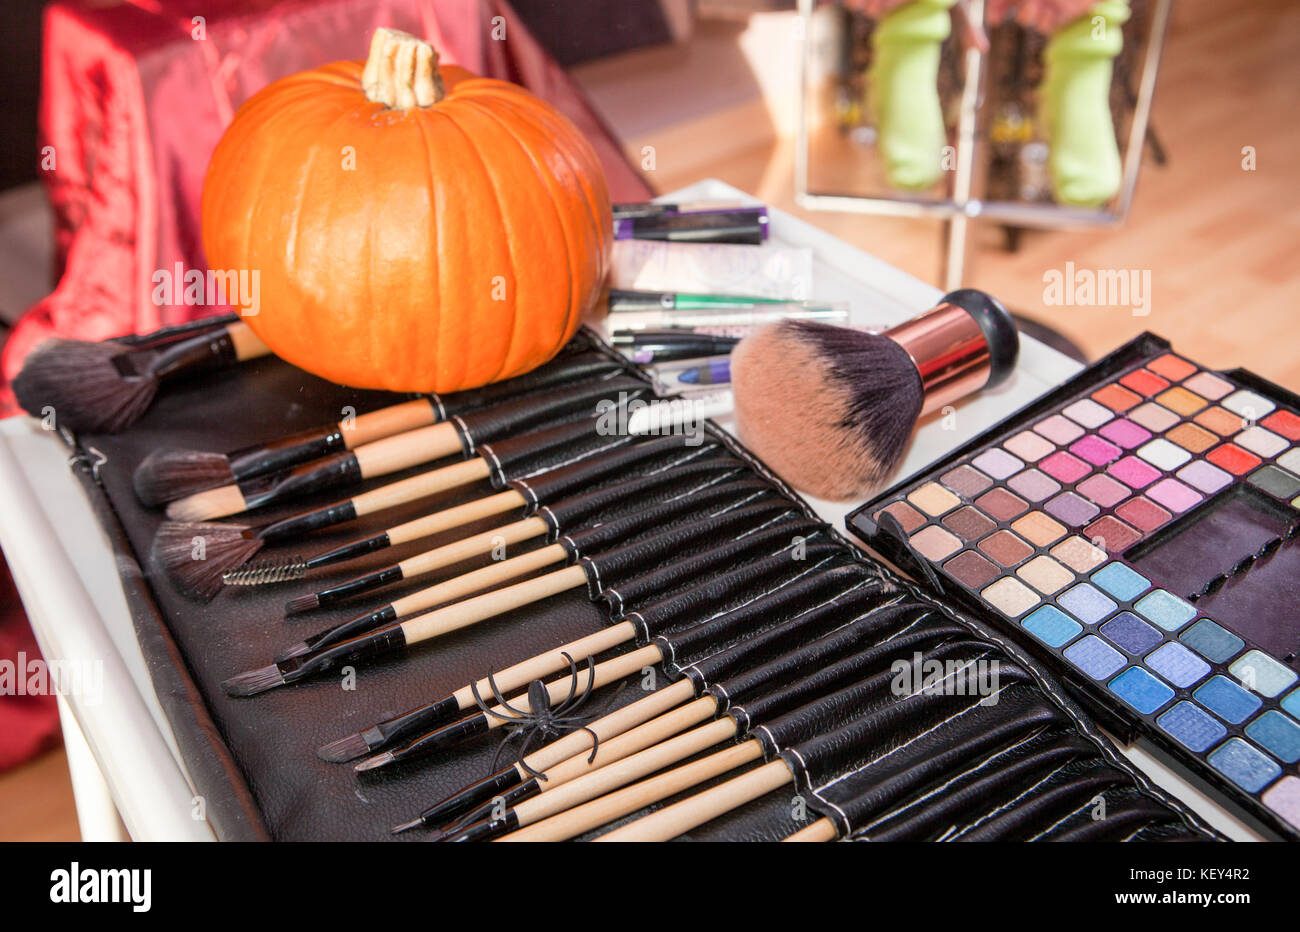 Set of brushes for makeup in a black cover with pumpkin